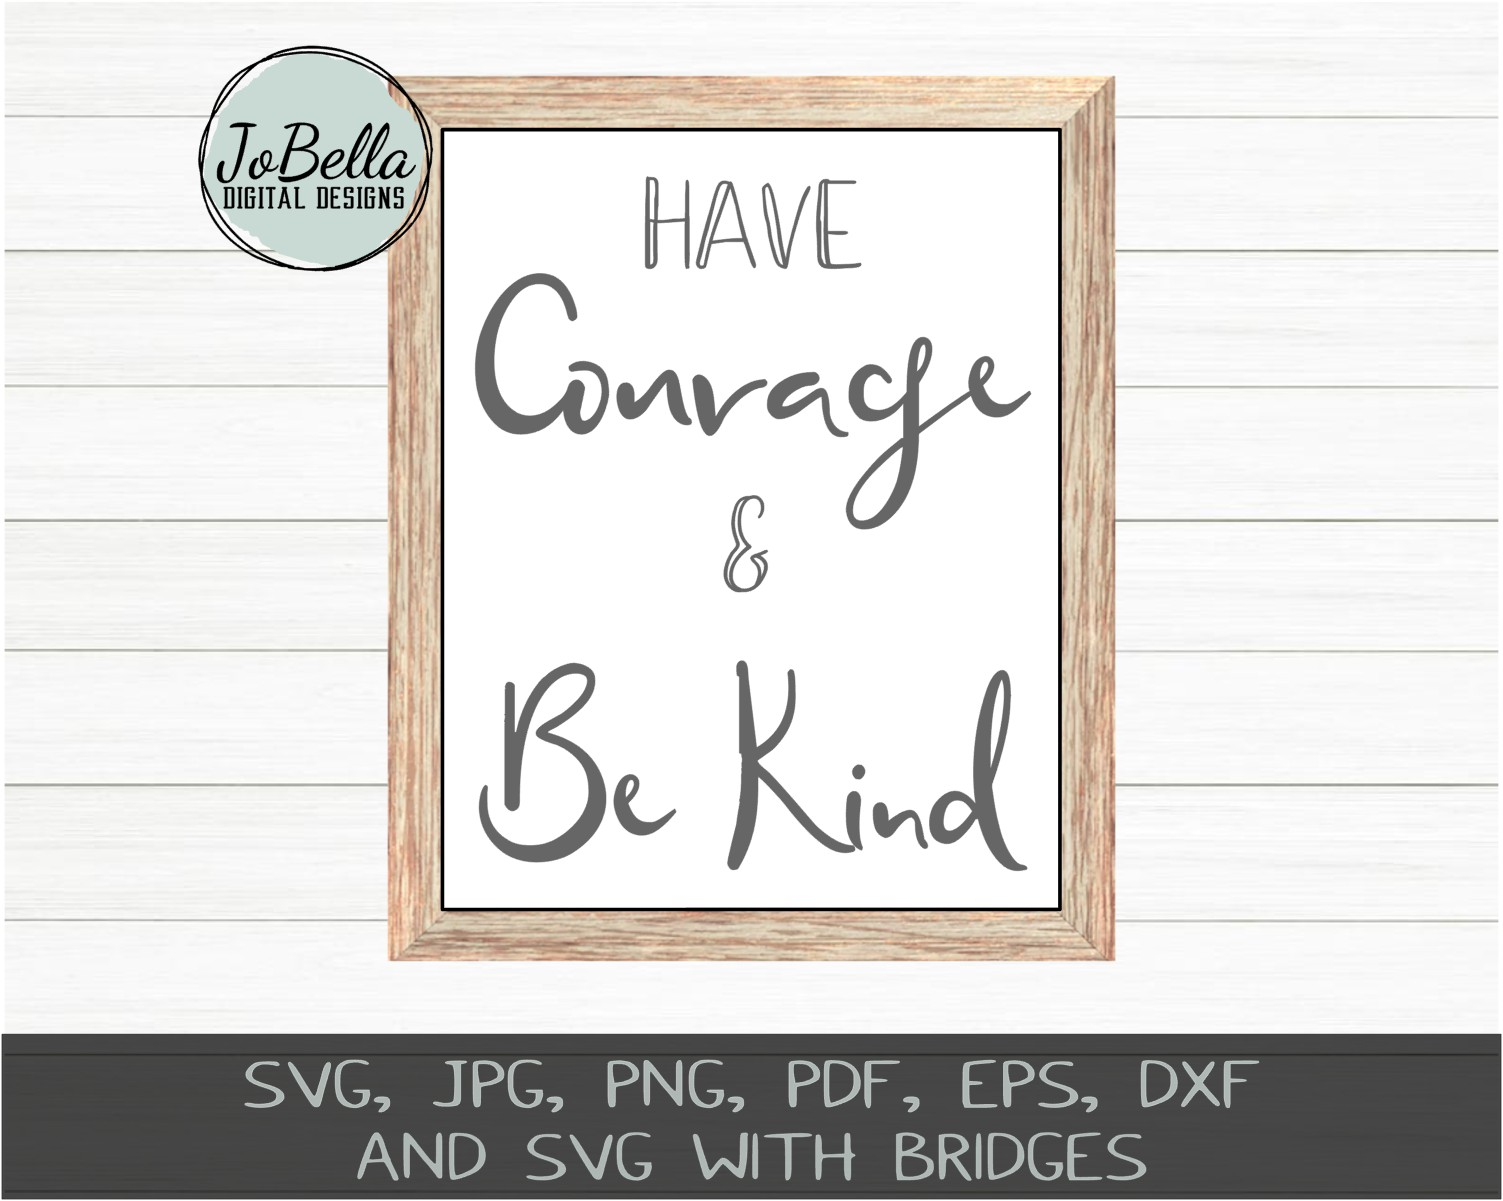 photo regarding Have Courage and Be Kind Printable identify Comprise Bravery and Be Variety SVG, Printable, and so on.